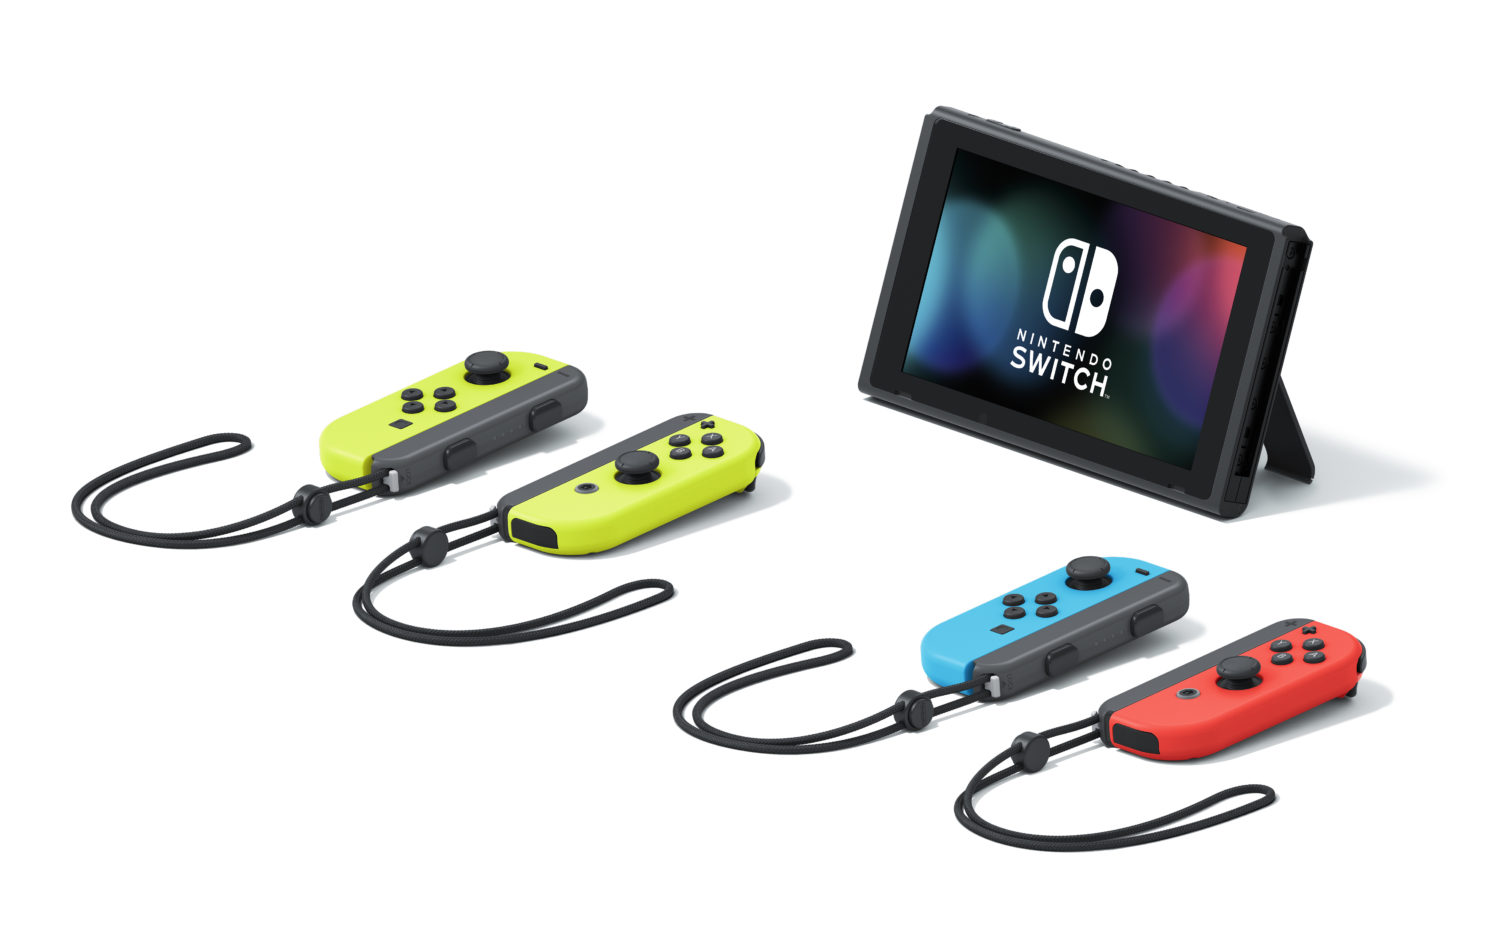 Law Firm Officially Files Joy-Con Drift Class-Action Lawsuit Against Nintendo